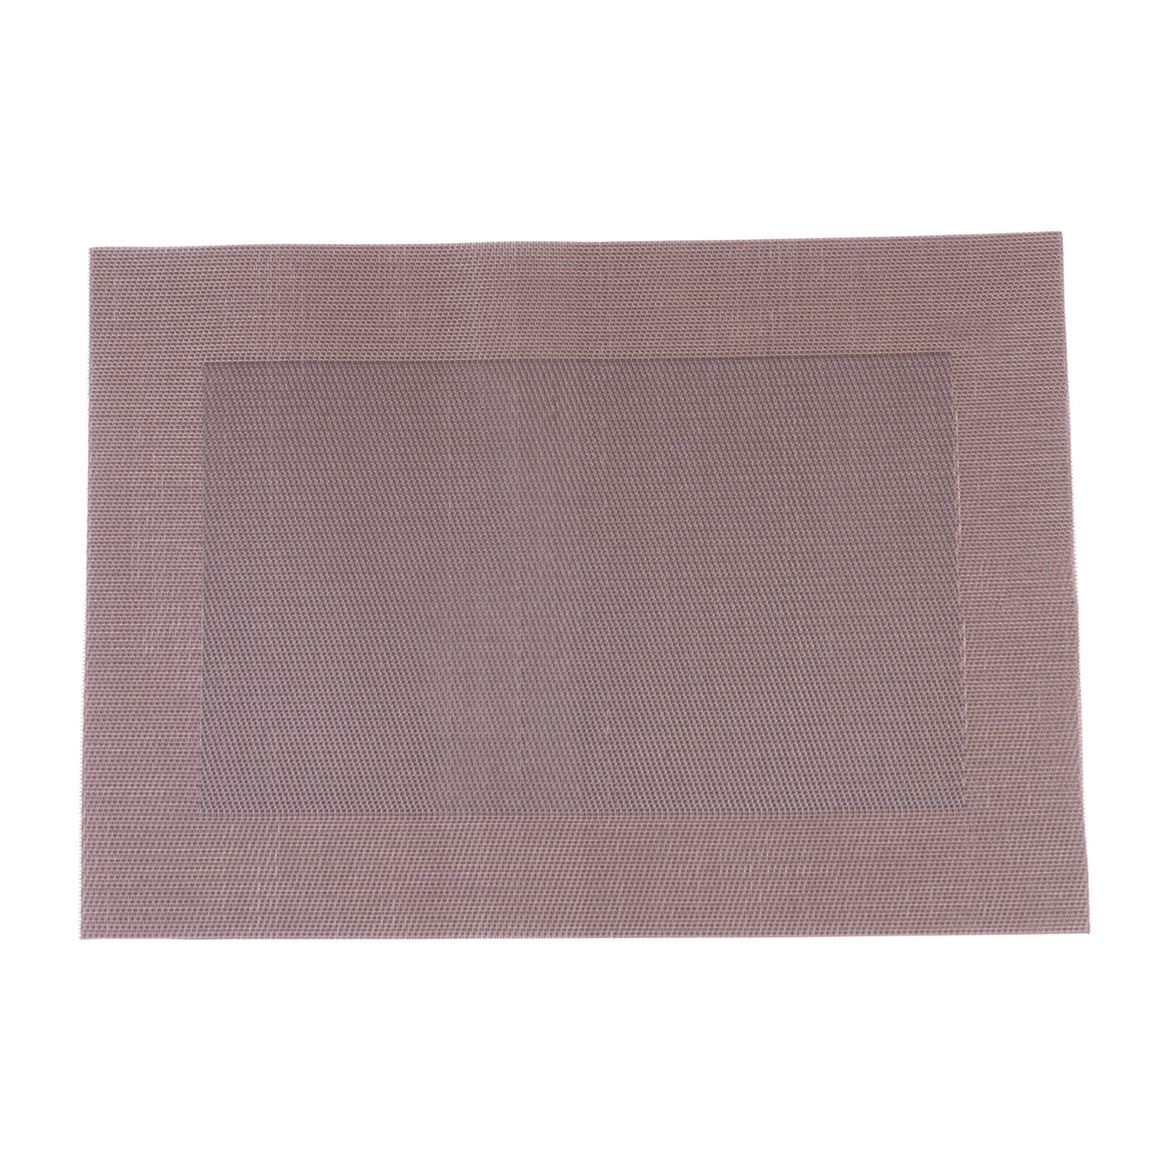 FRAME Placemat donkerbruin B 35 x L 50 cm_frame-placemat-donkerbruin-b-35-x-l-50-cm